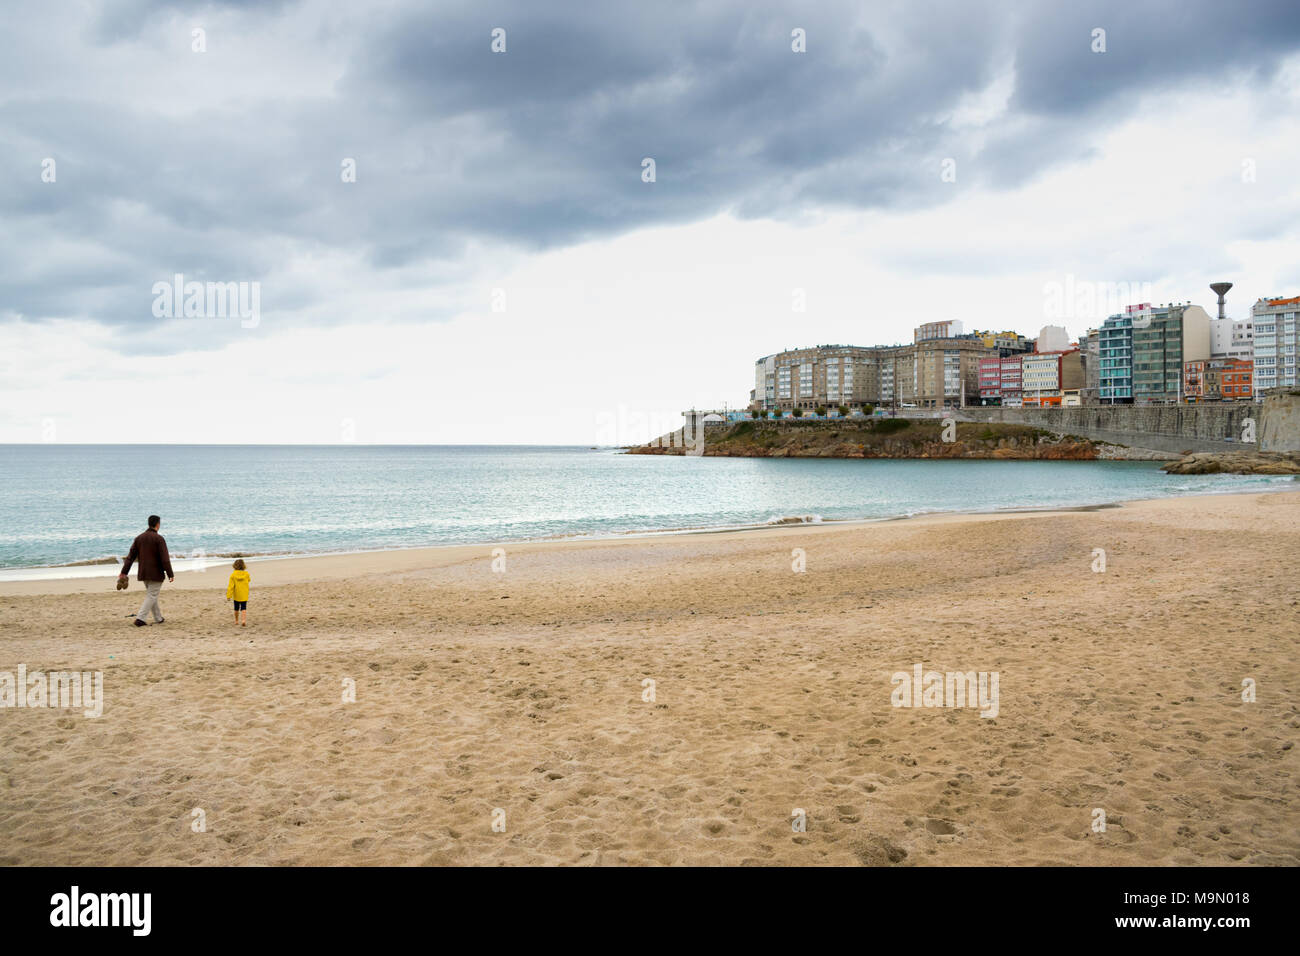 Father and daughter walking on a beach in Northern Spain under a cloudy sky - Stock Image